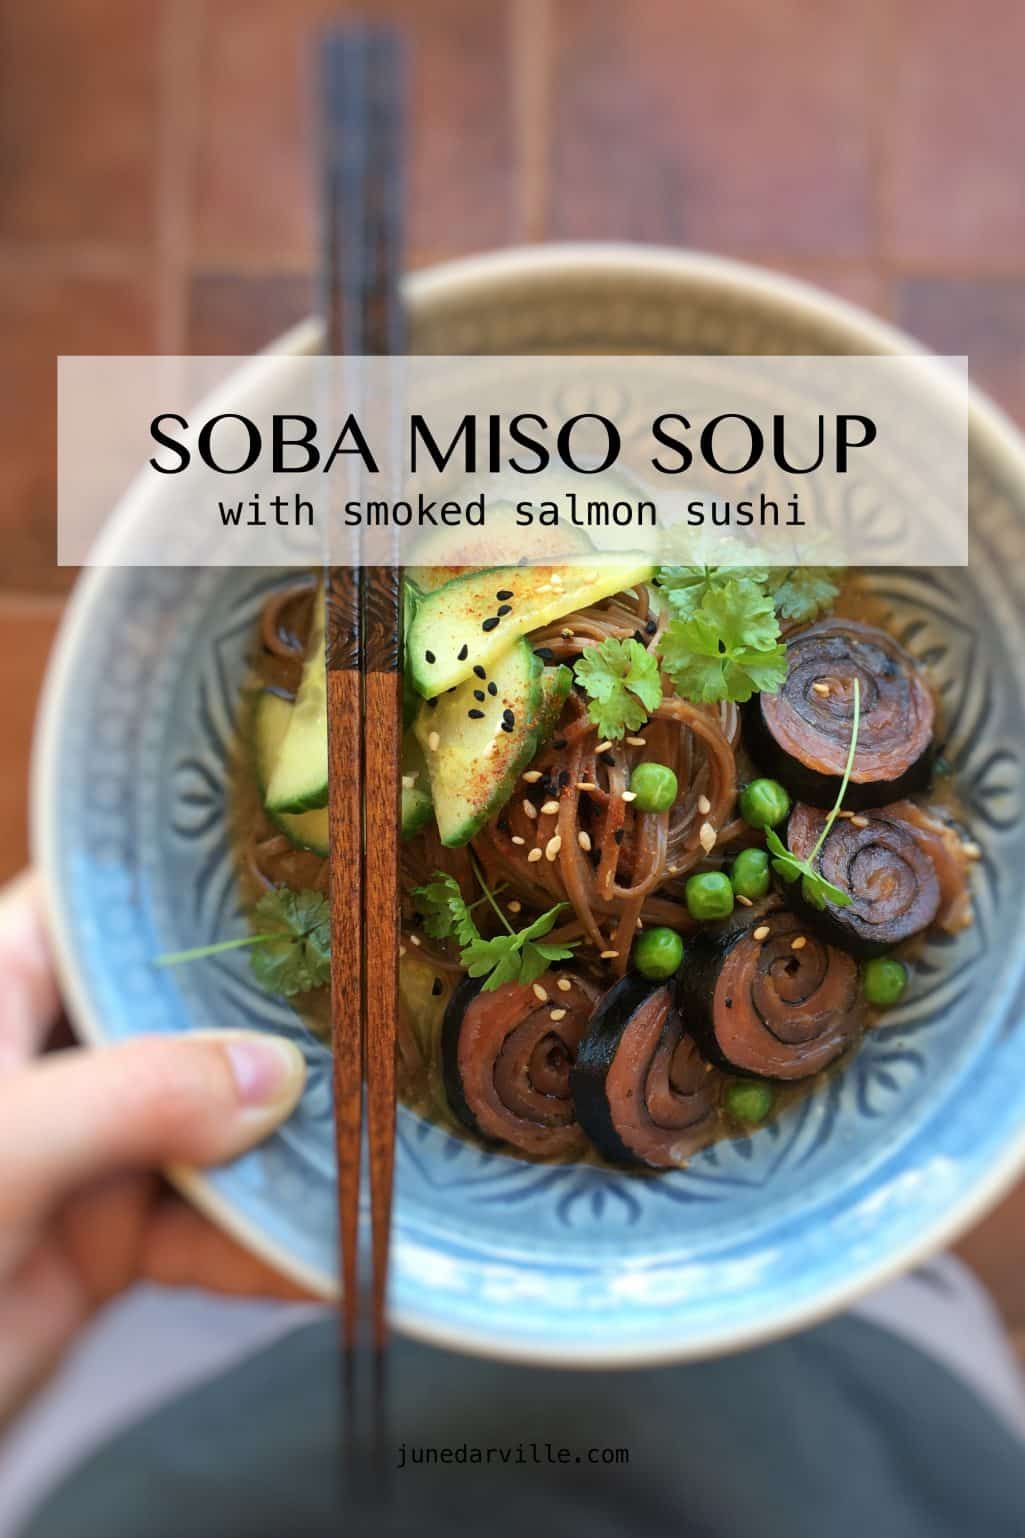 This soup is ready in just 30 minutes: my soba miso soup with cucumber and cute little smoked salmon and nori sushi roll ups!